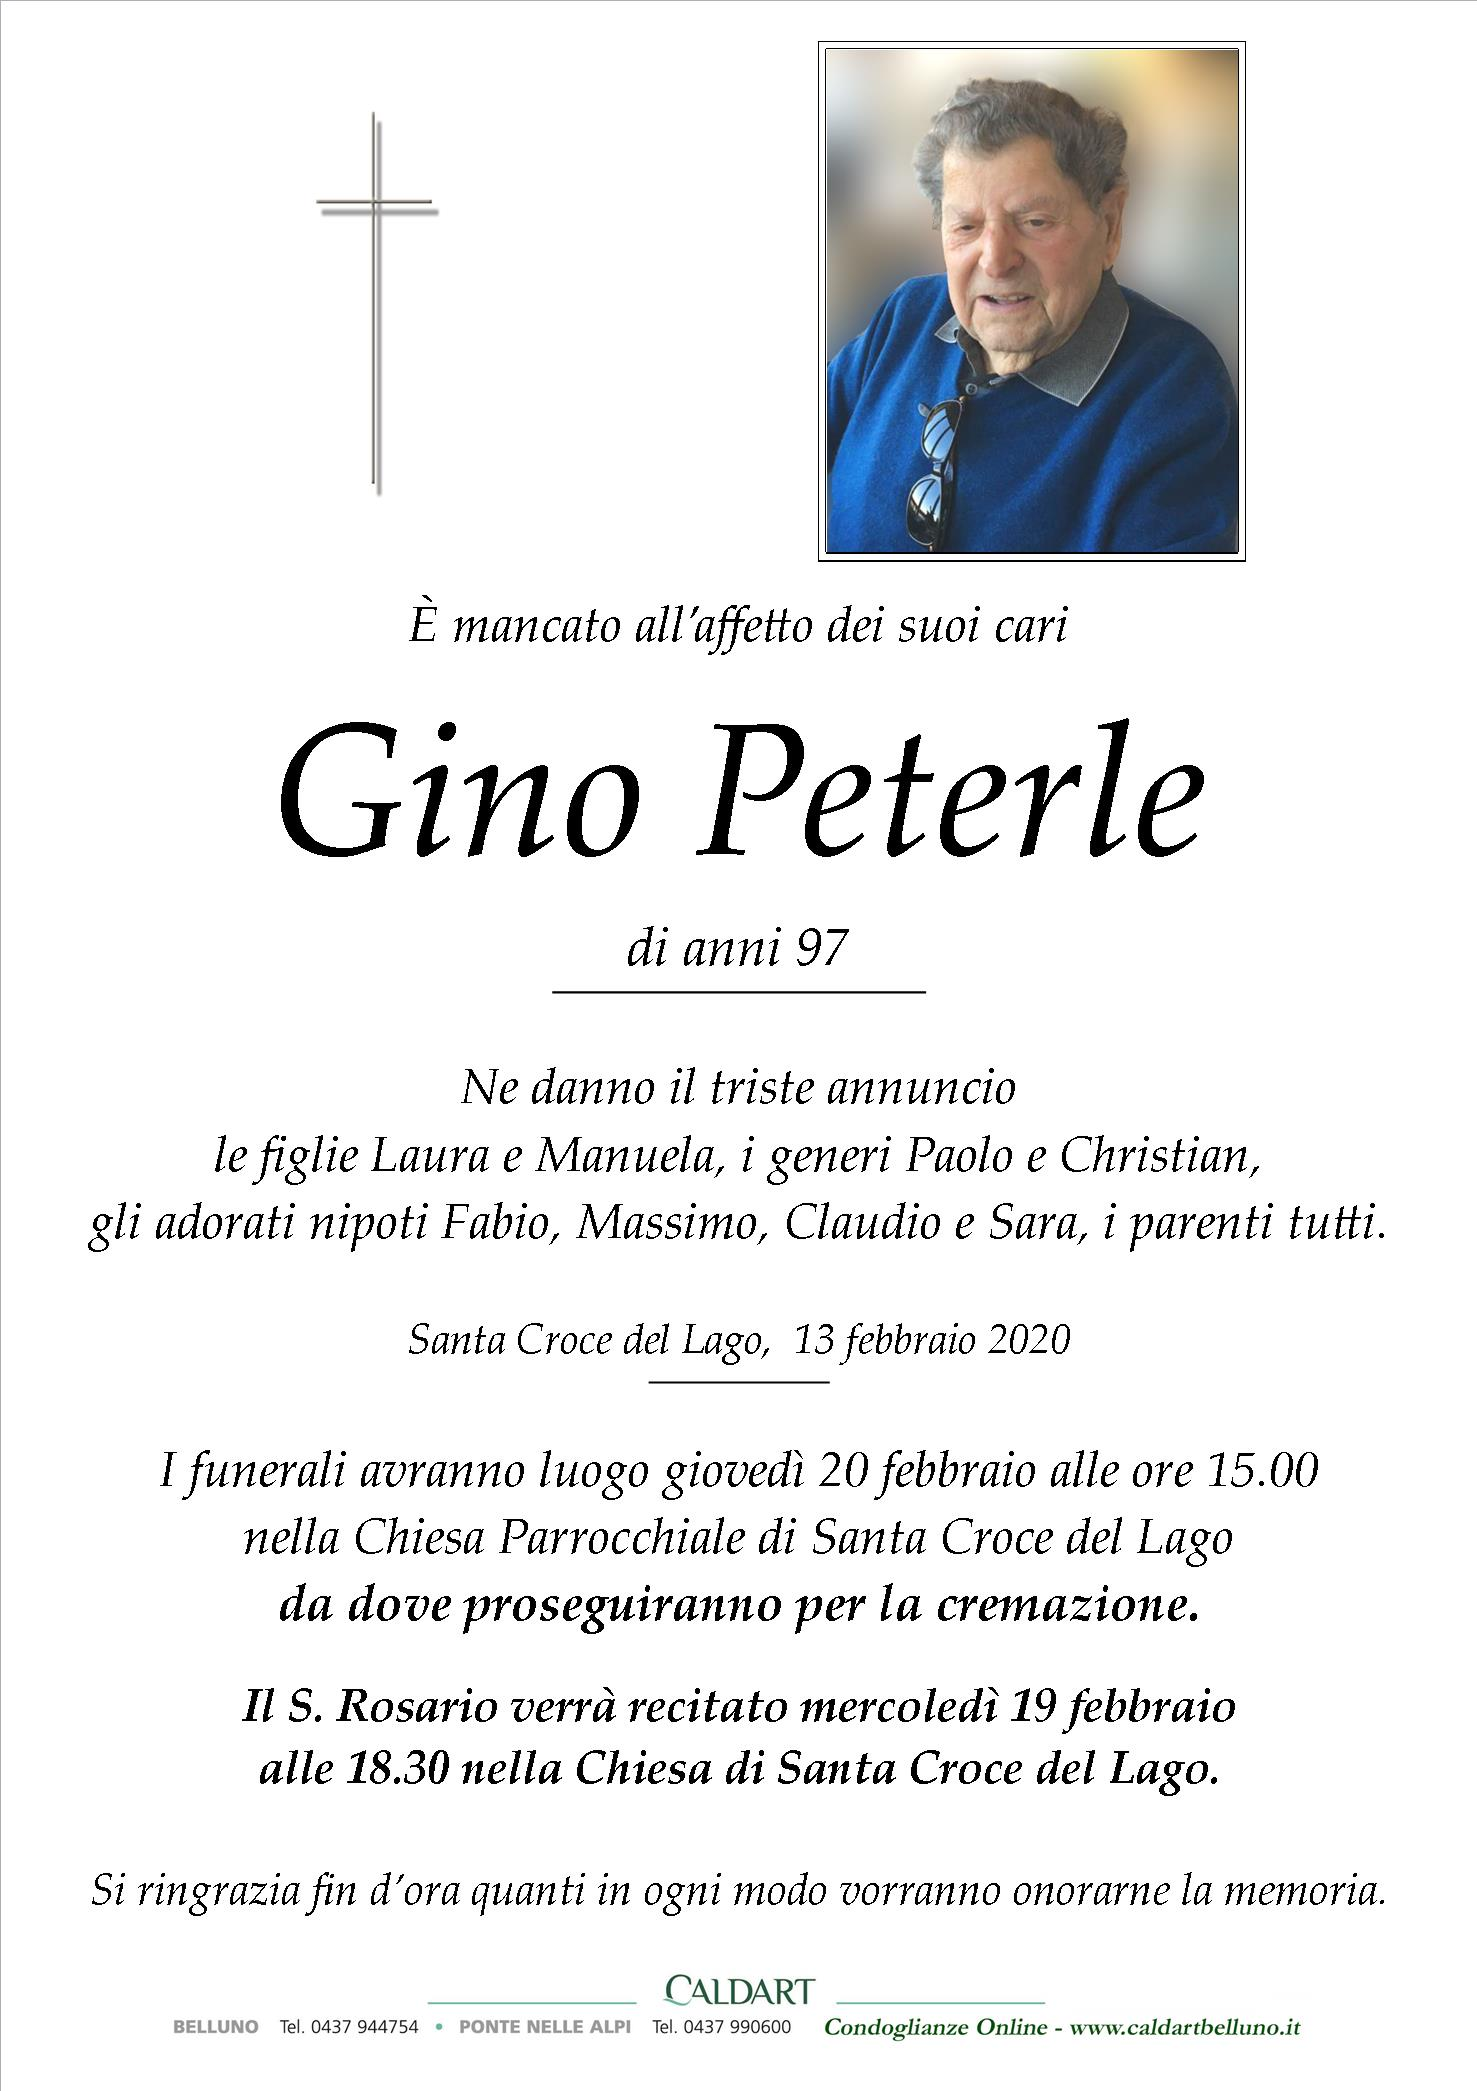 Peterle Gino